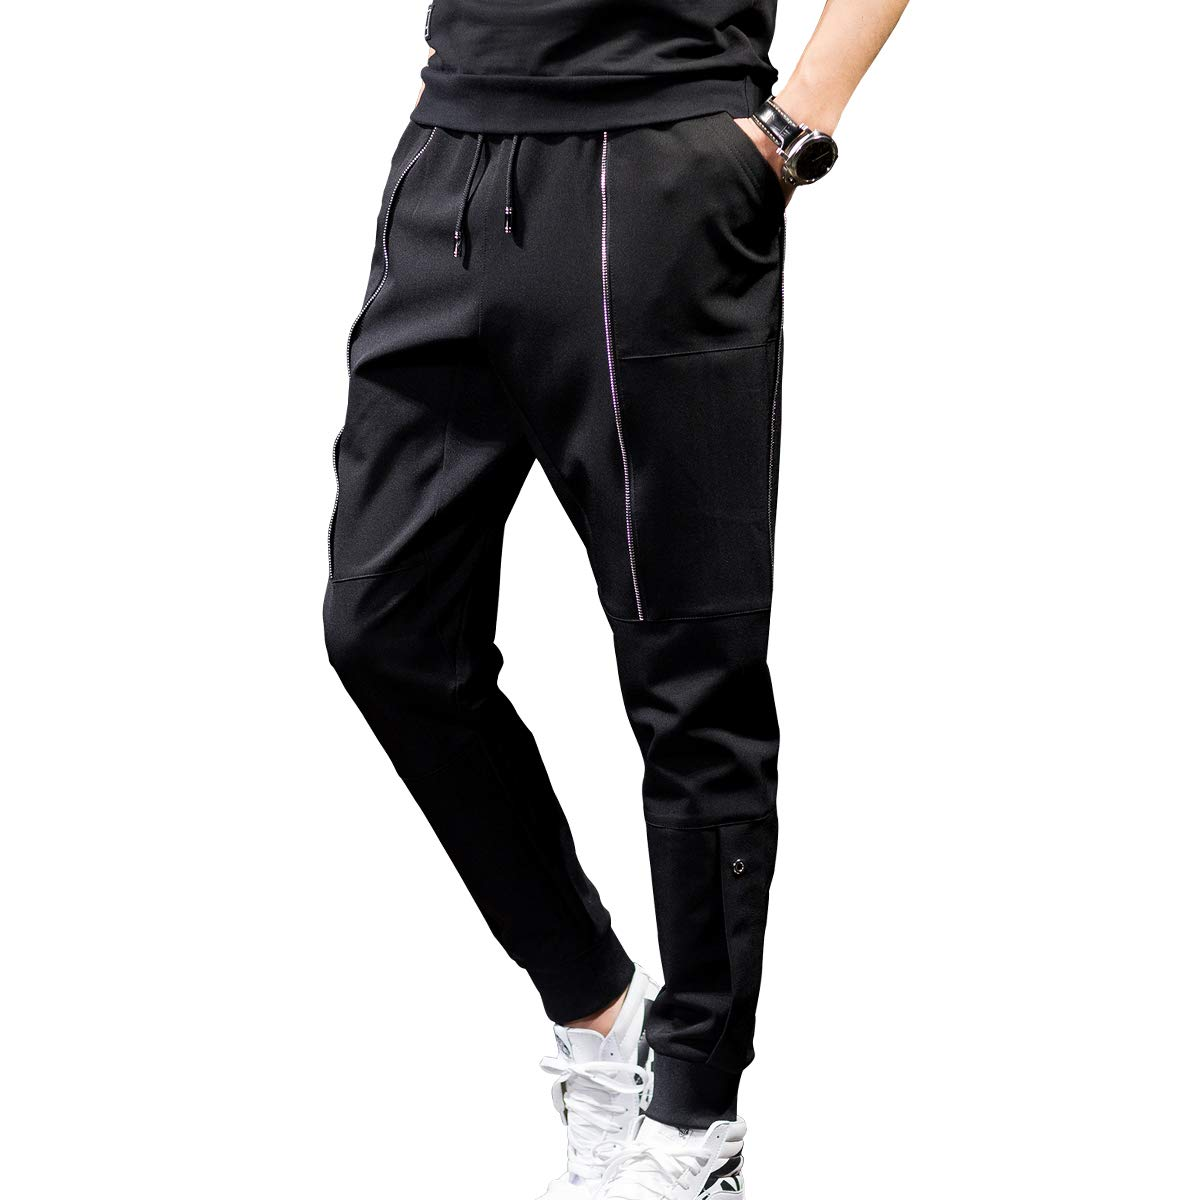 CNMUDONSI Youth Boys Pants Loose Fit Relaxed Adjustable Waist Elastic Size 12 14 16 18 20